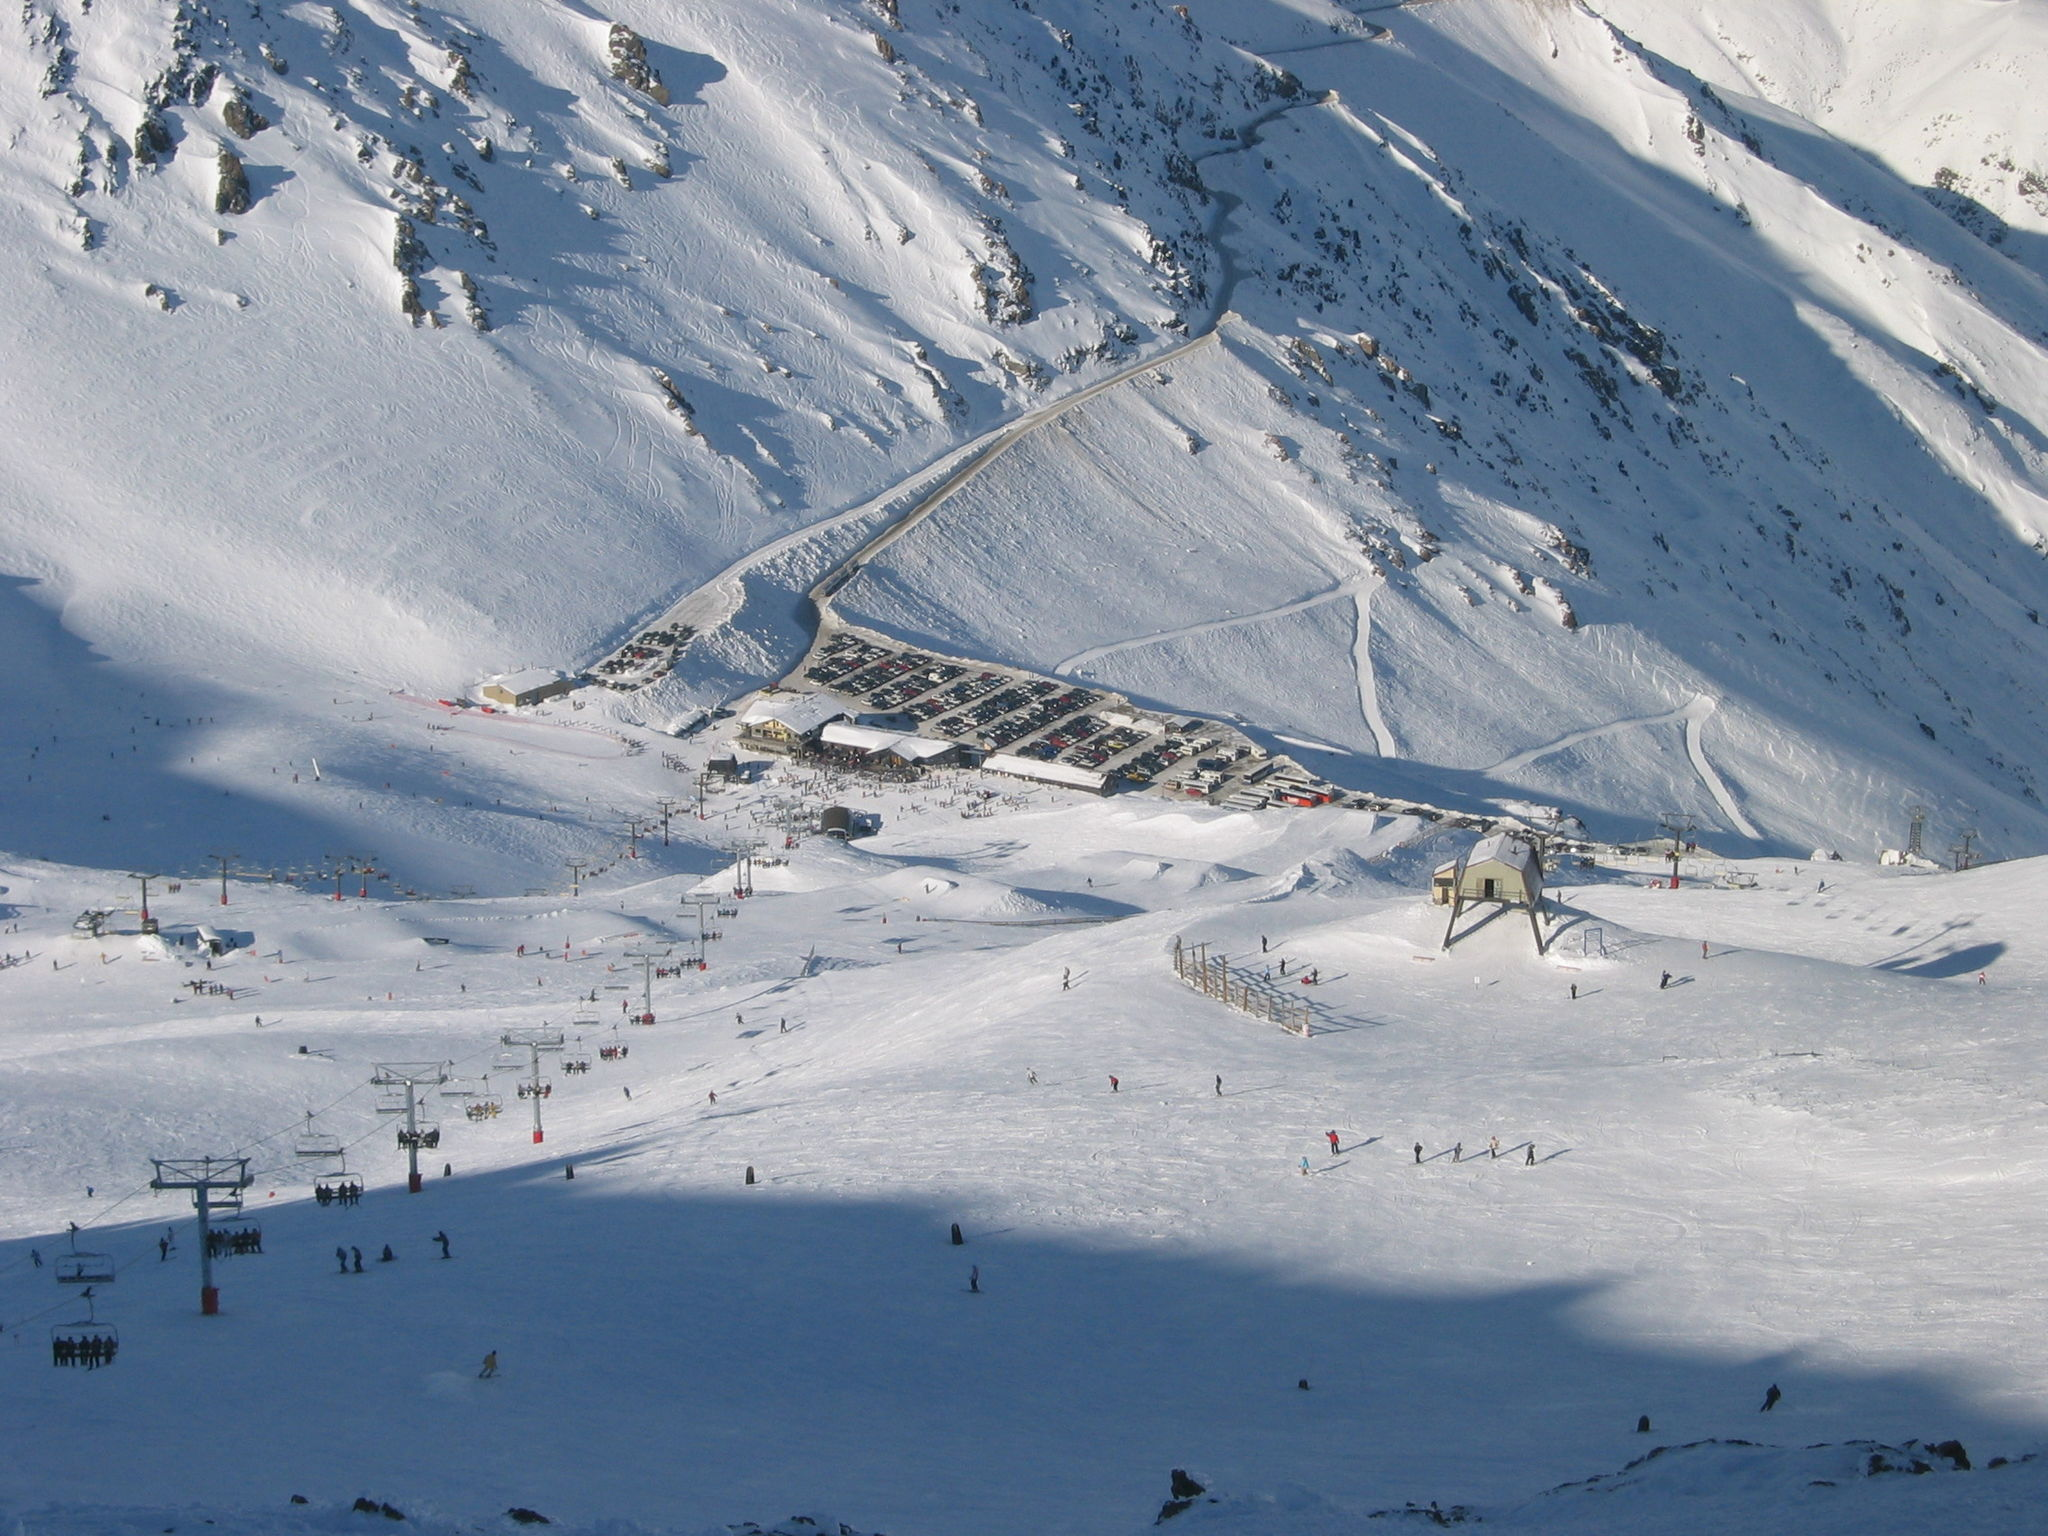 View from Mount Hutts Summit at the ski area, Mt Hutt